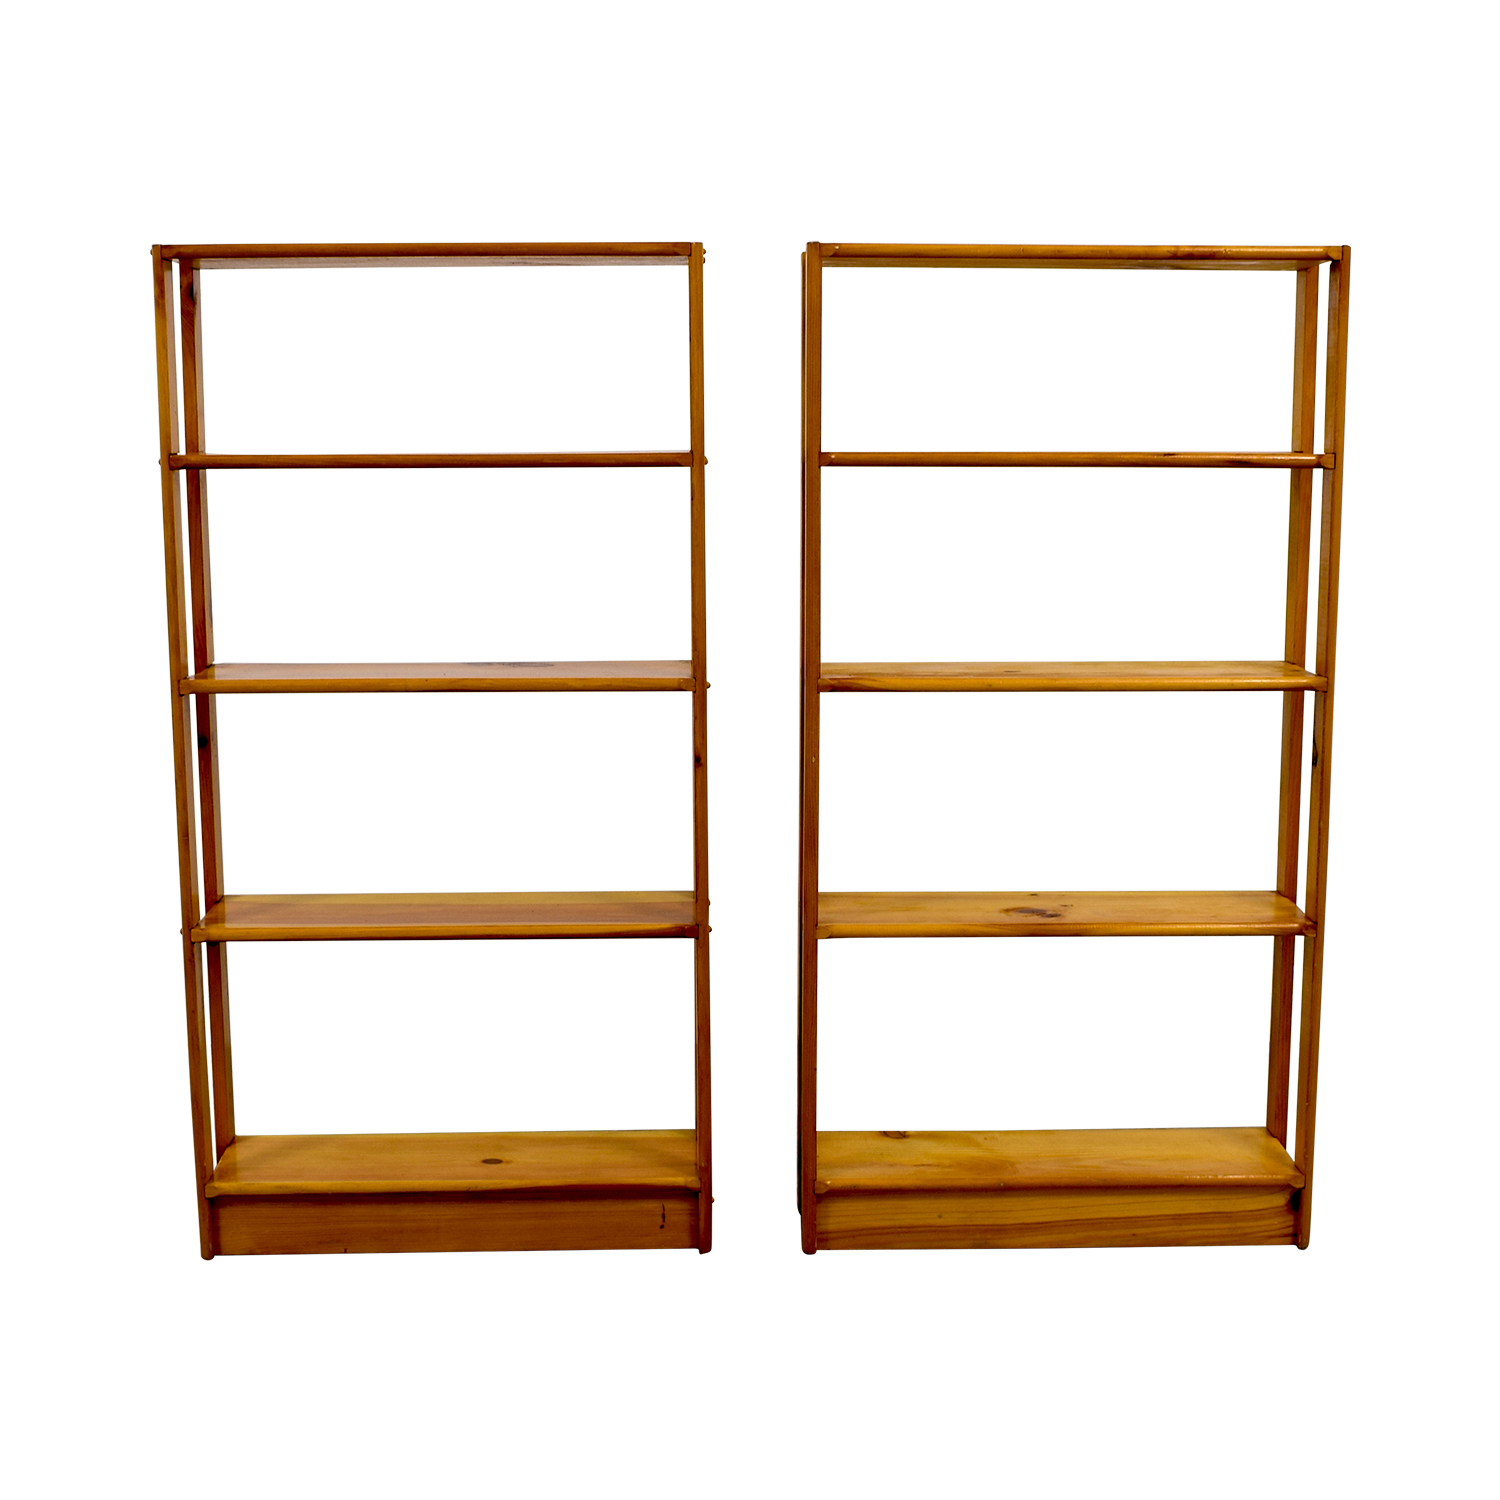 Slim Light Brown Wooden Bookshelves / Bookcases & Shelving